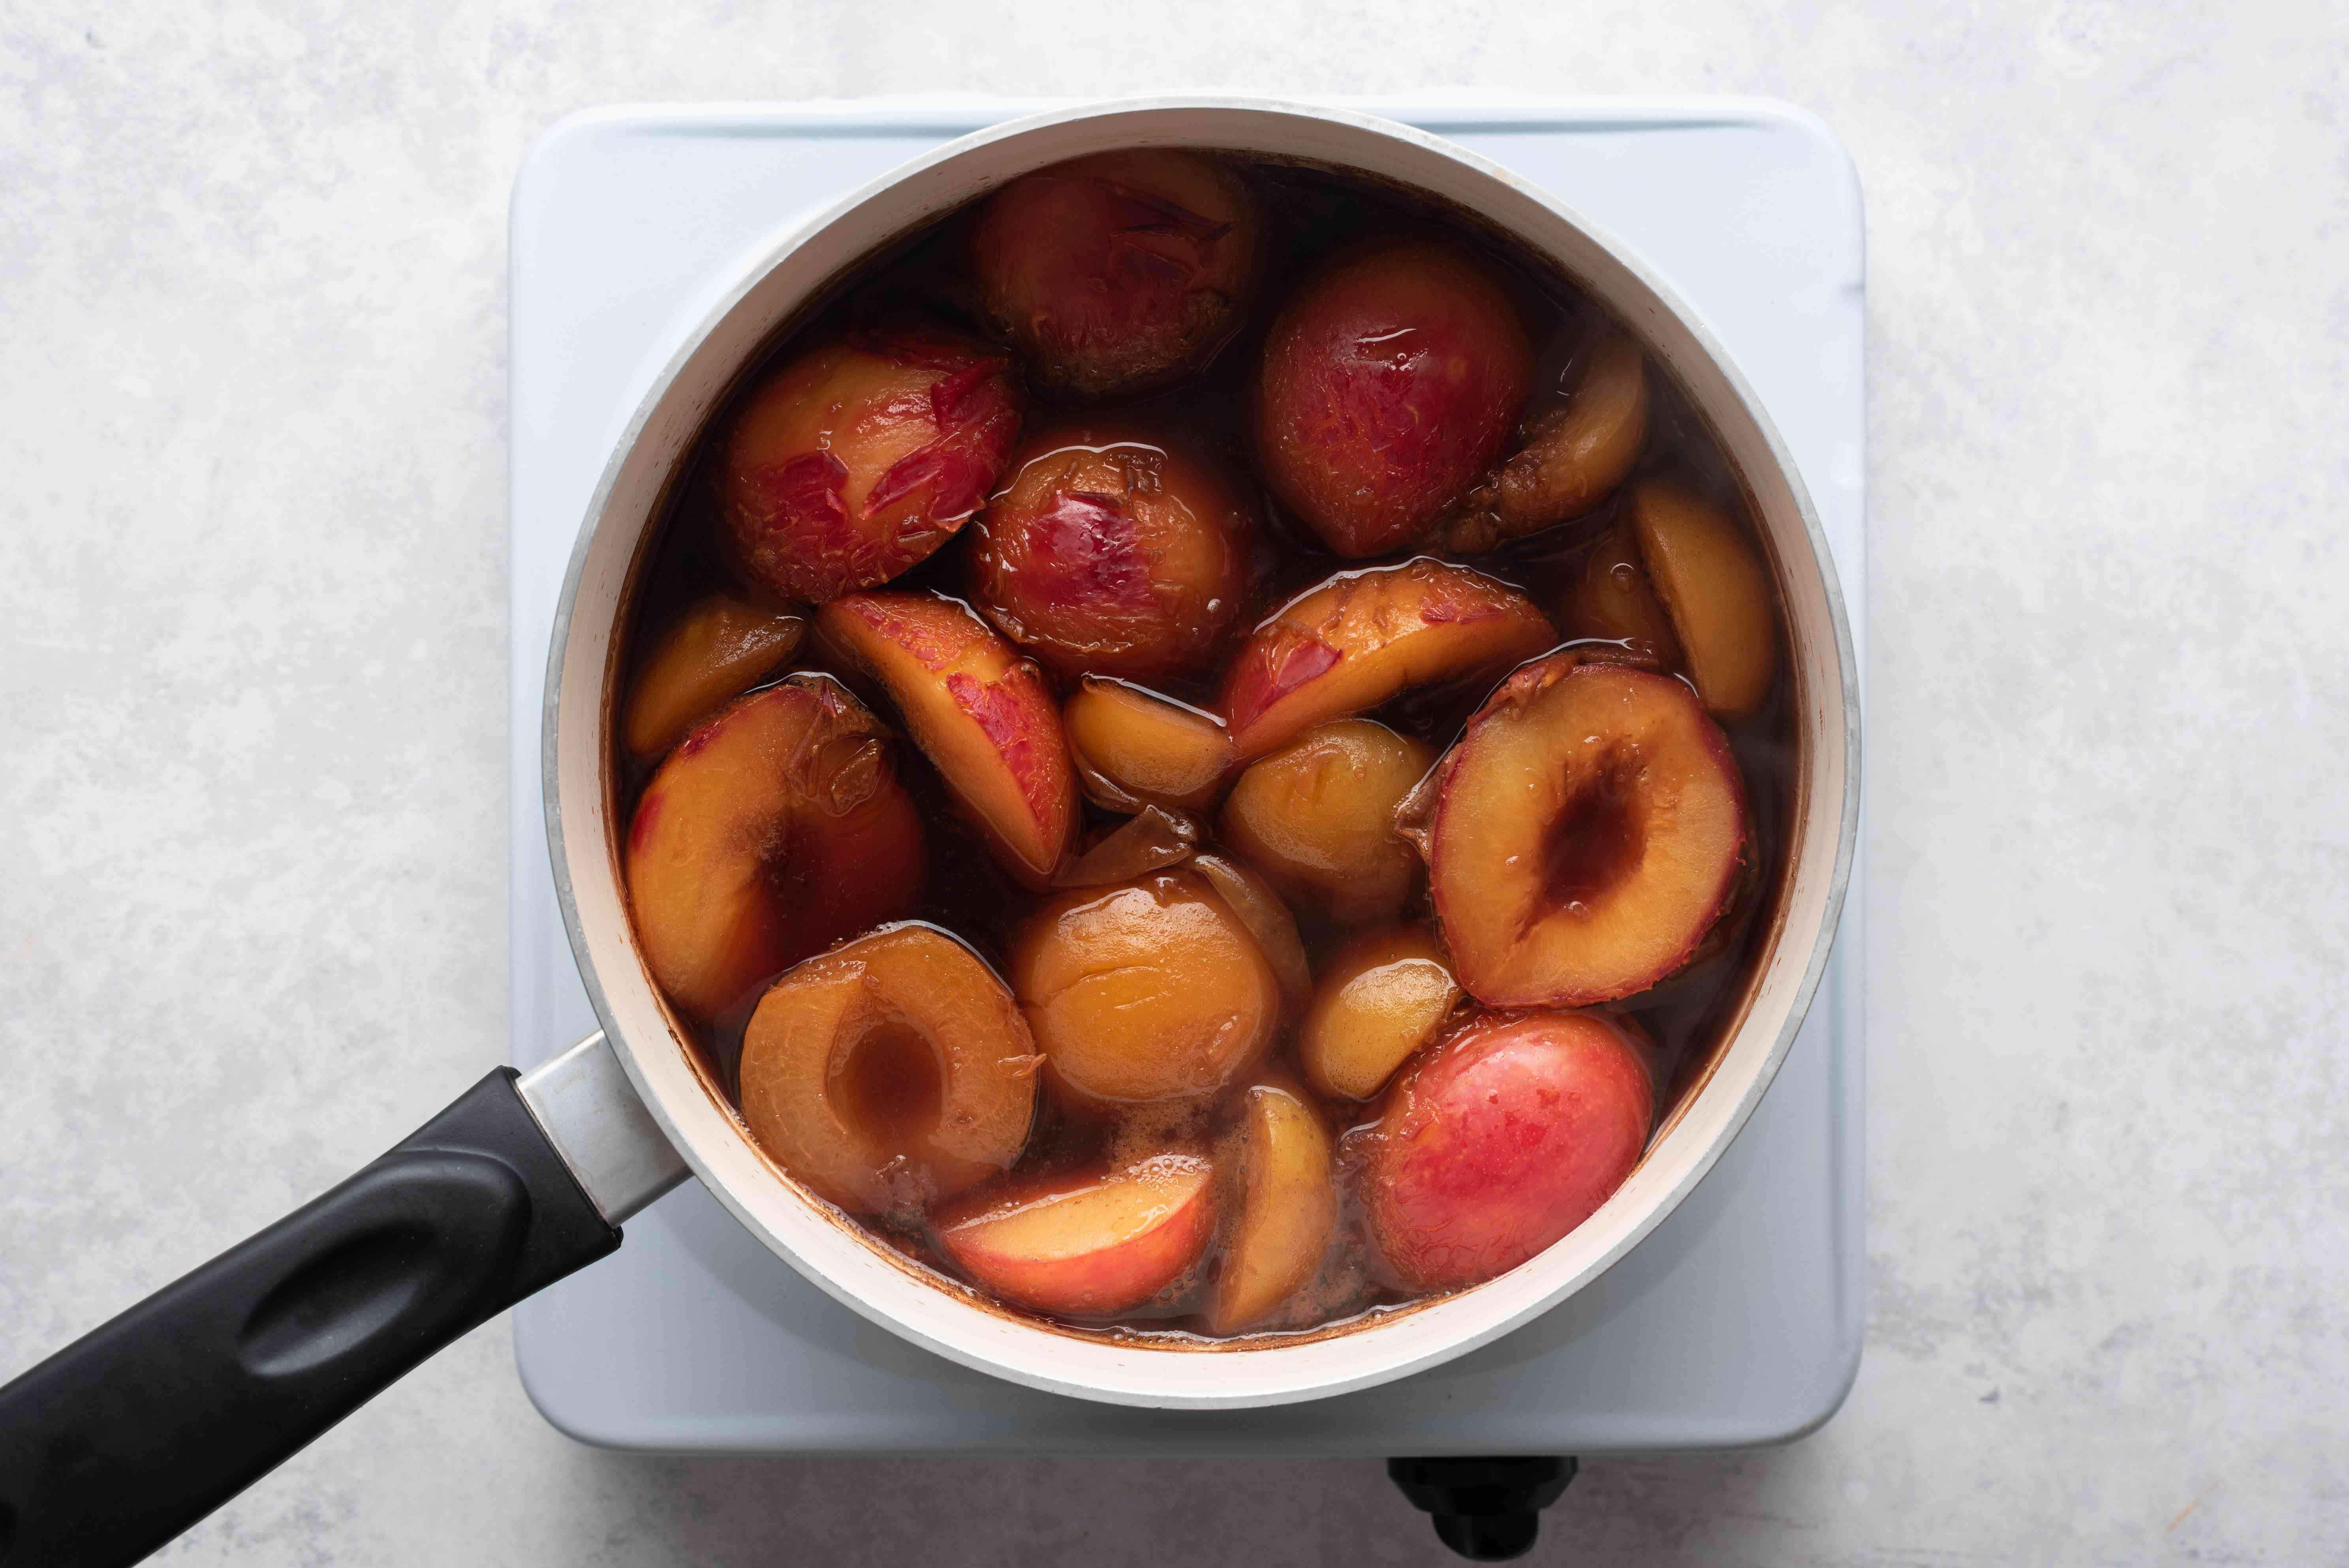 Place the plums, apricots, cider vinegar, water, and balsamic vinegar in a saucepan